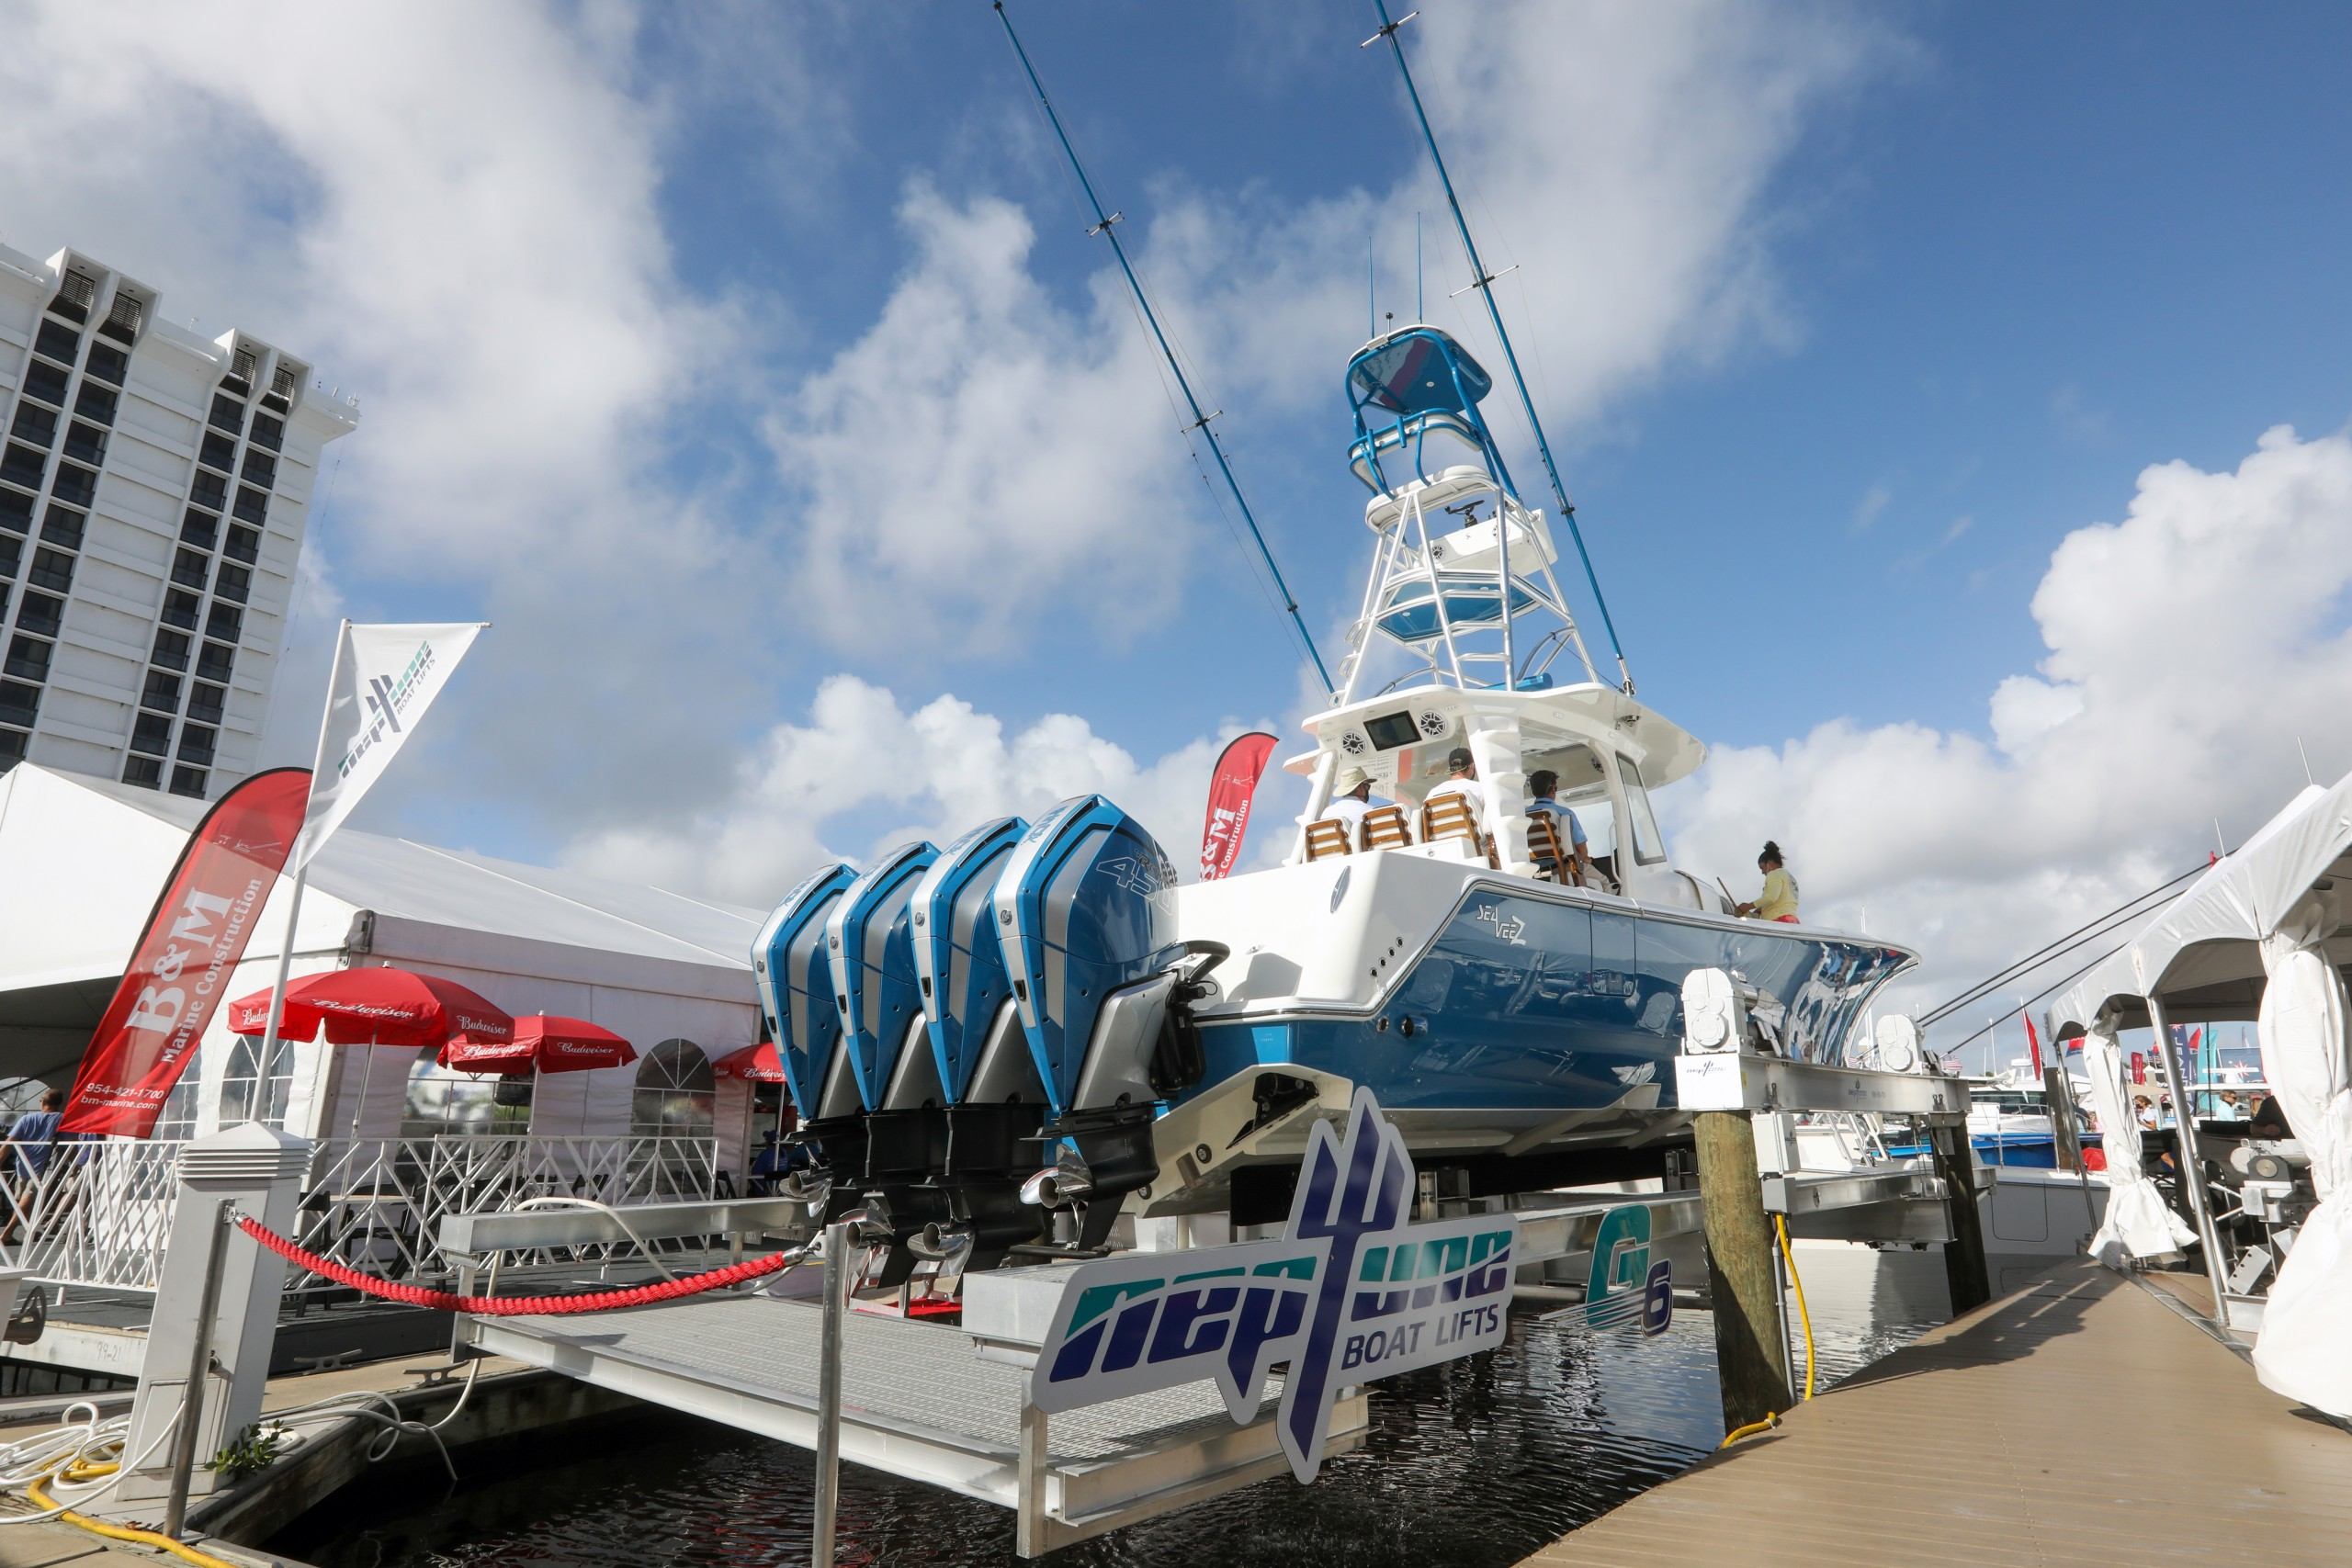 neptune boat lifts on display at the fort lauderdale boat show